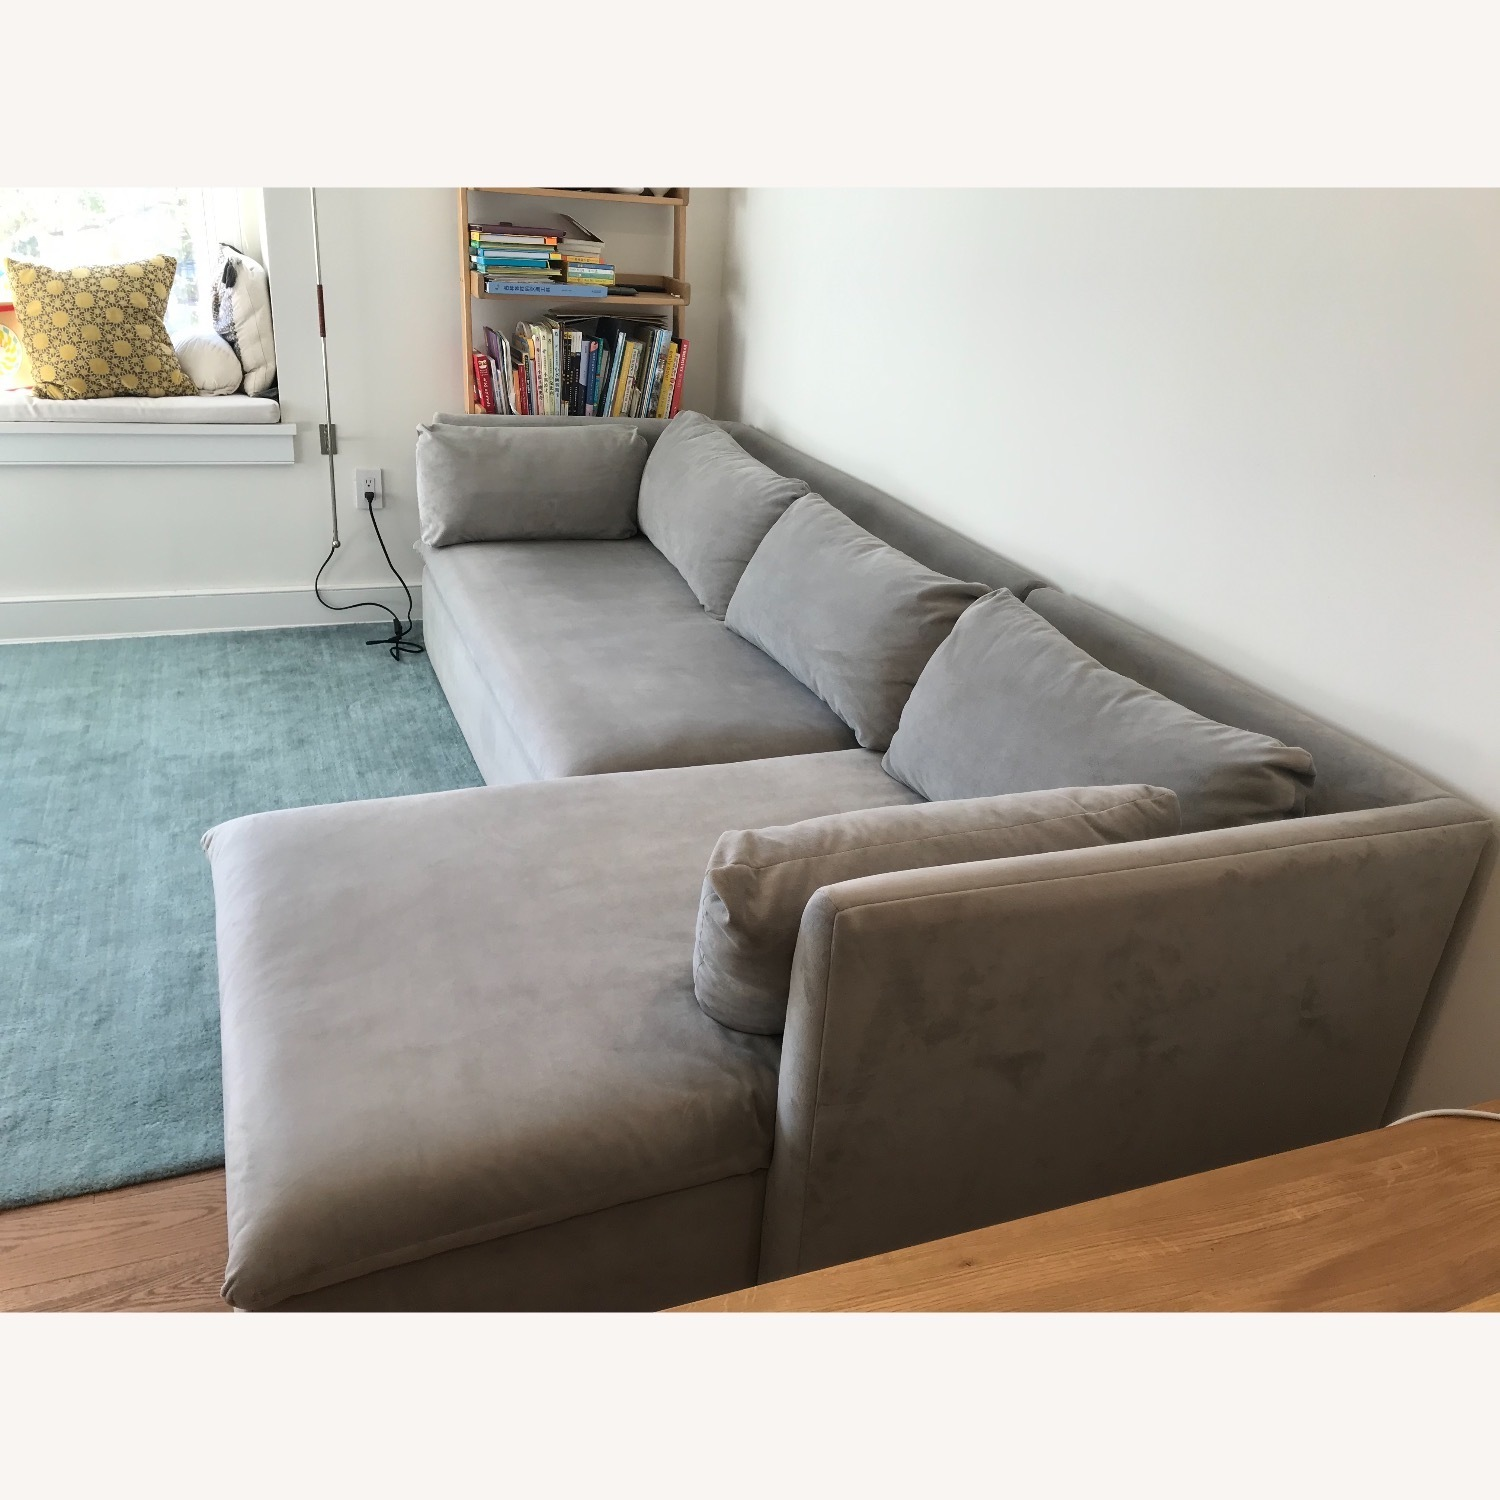 West Elm Shelter Sectional Sofa Dove Gray - image-5